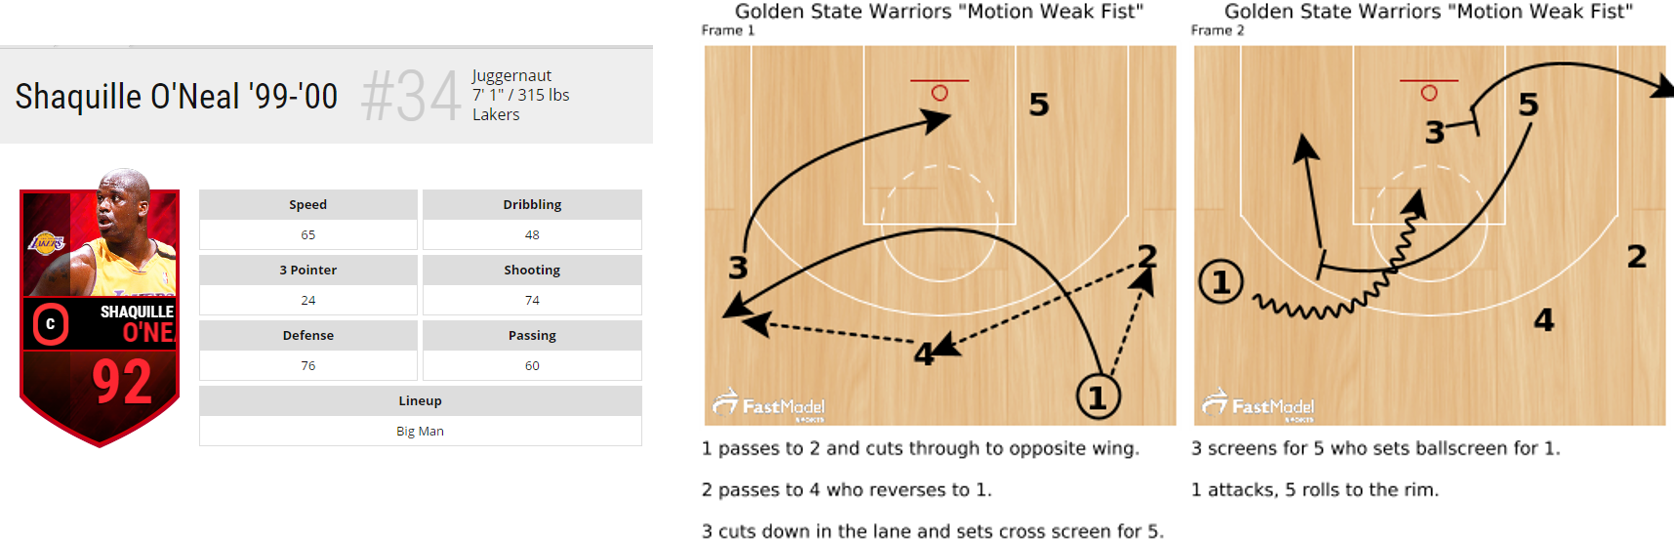 Shaq is one of the greatest centers of all time, and is a very highly rated player in EA's NBA Live Mobile - but he is too slow and not versatile enough to execute the Golden State Warriors' fast style of motion-heavy play (play diagram courtesy of FastModelSports.com)